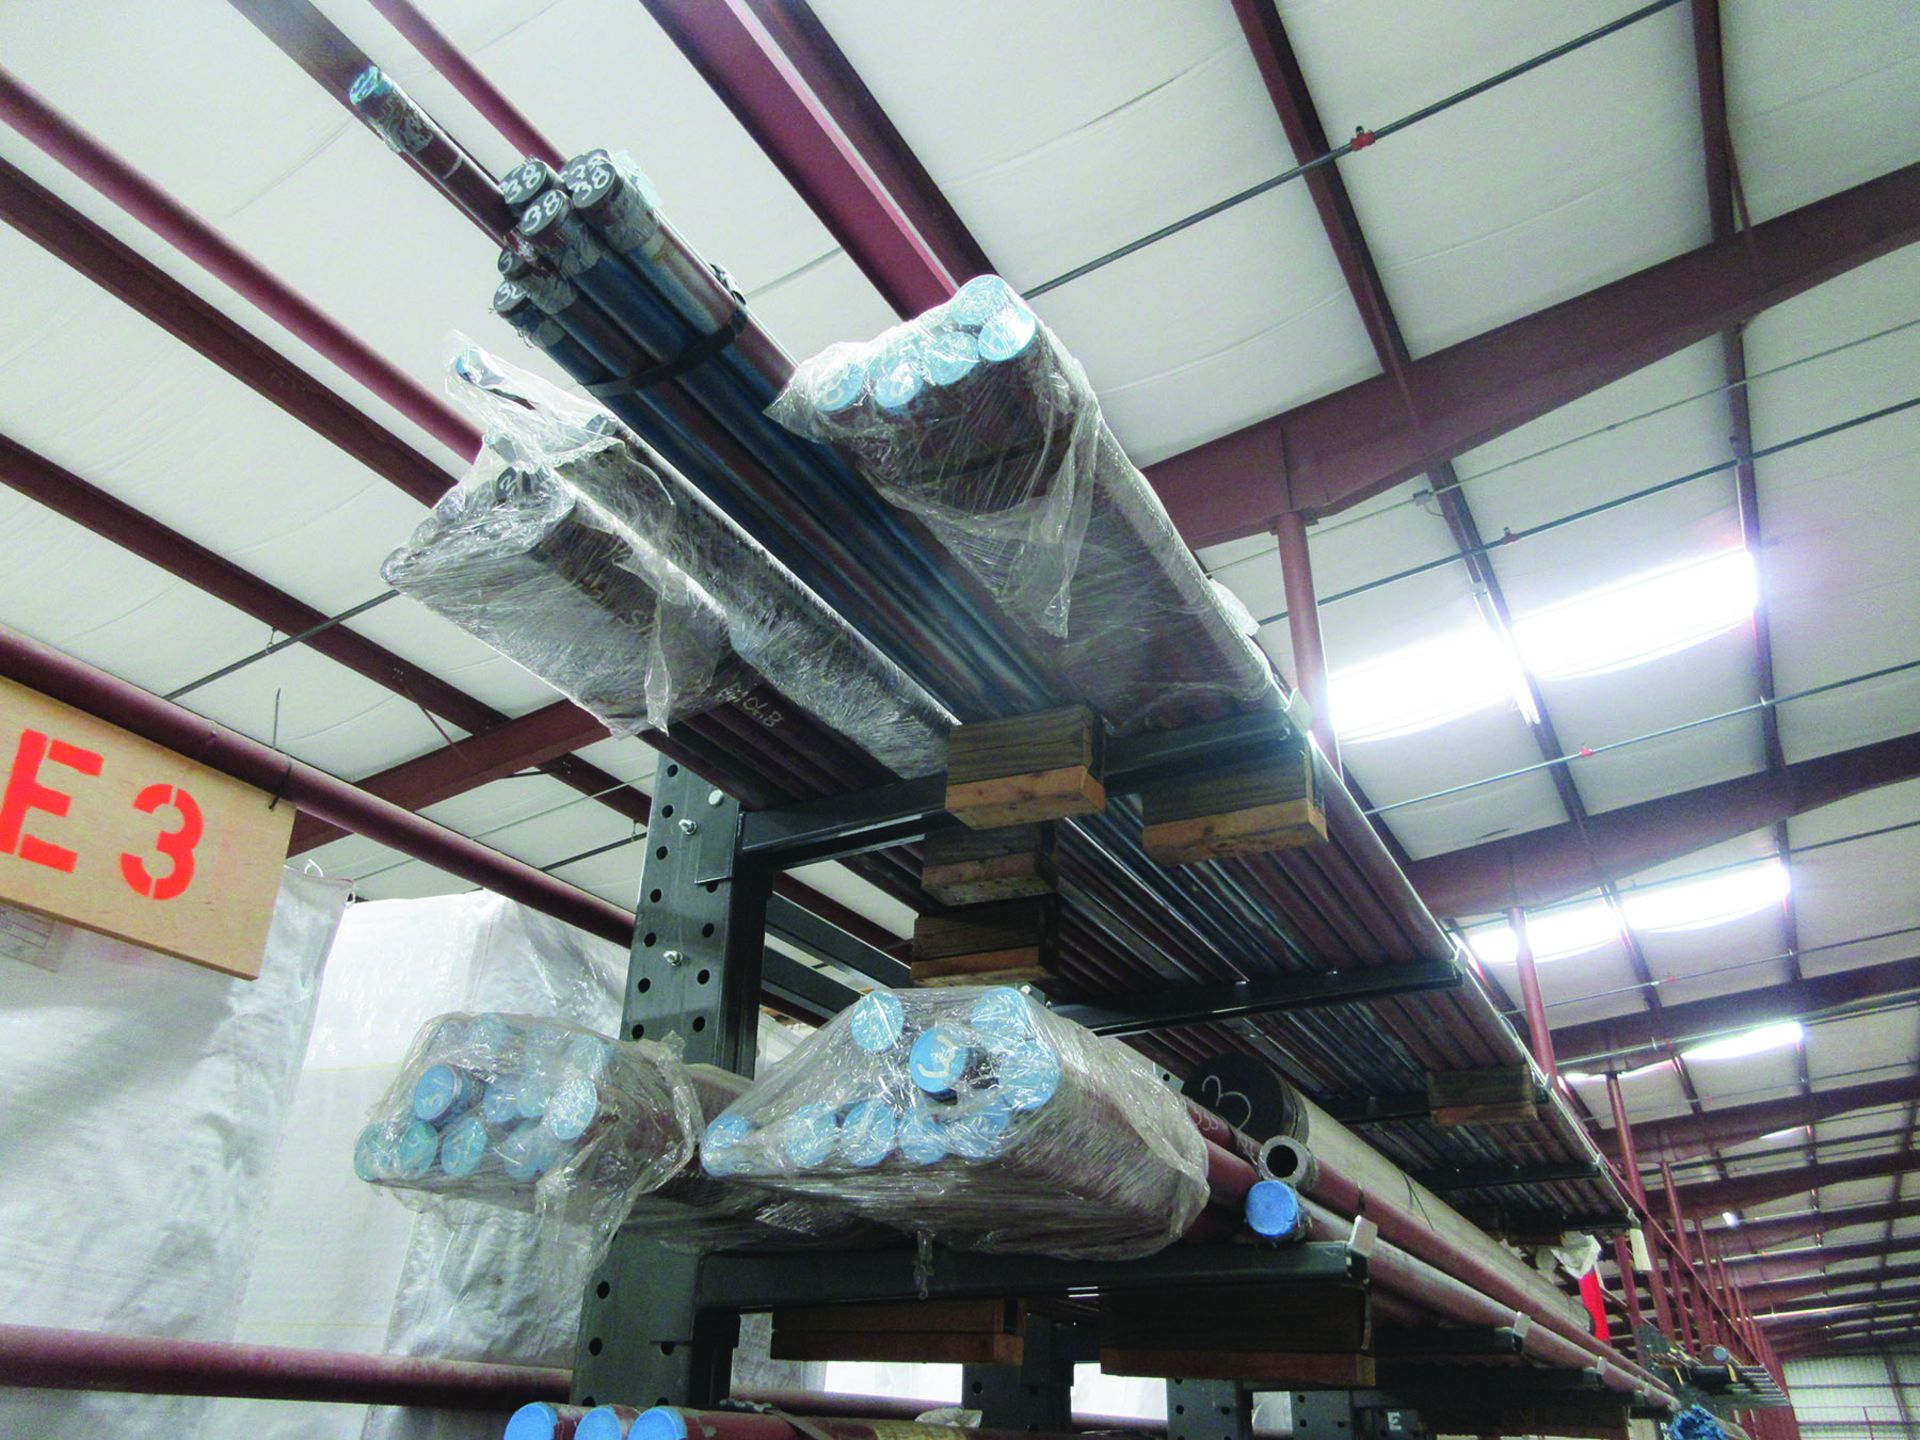 CANTILEVER RACK W/CONTENT: 120'' X 48'' X 202'', BUNDLES OF PIPE; 3/4'', 1'', 1 1/2'', 2'', MOST - Image 5 of 17